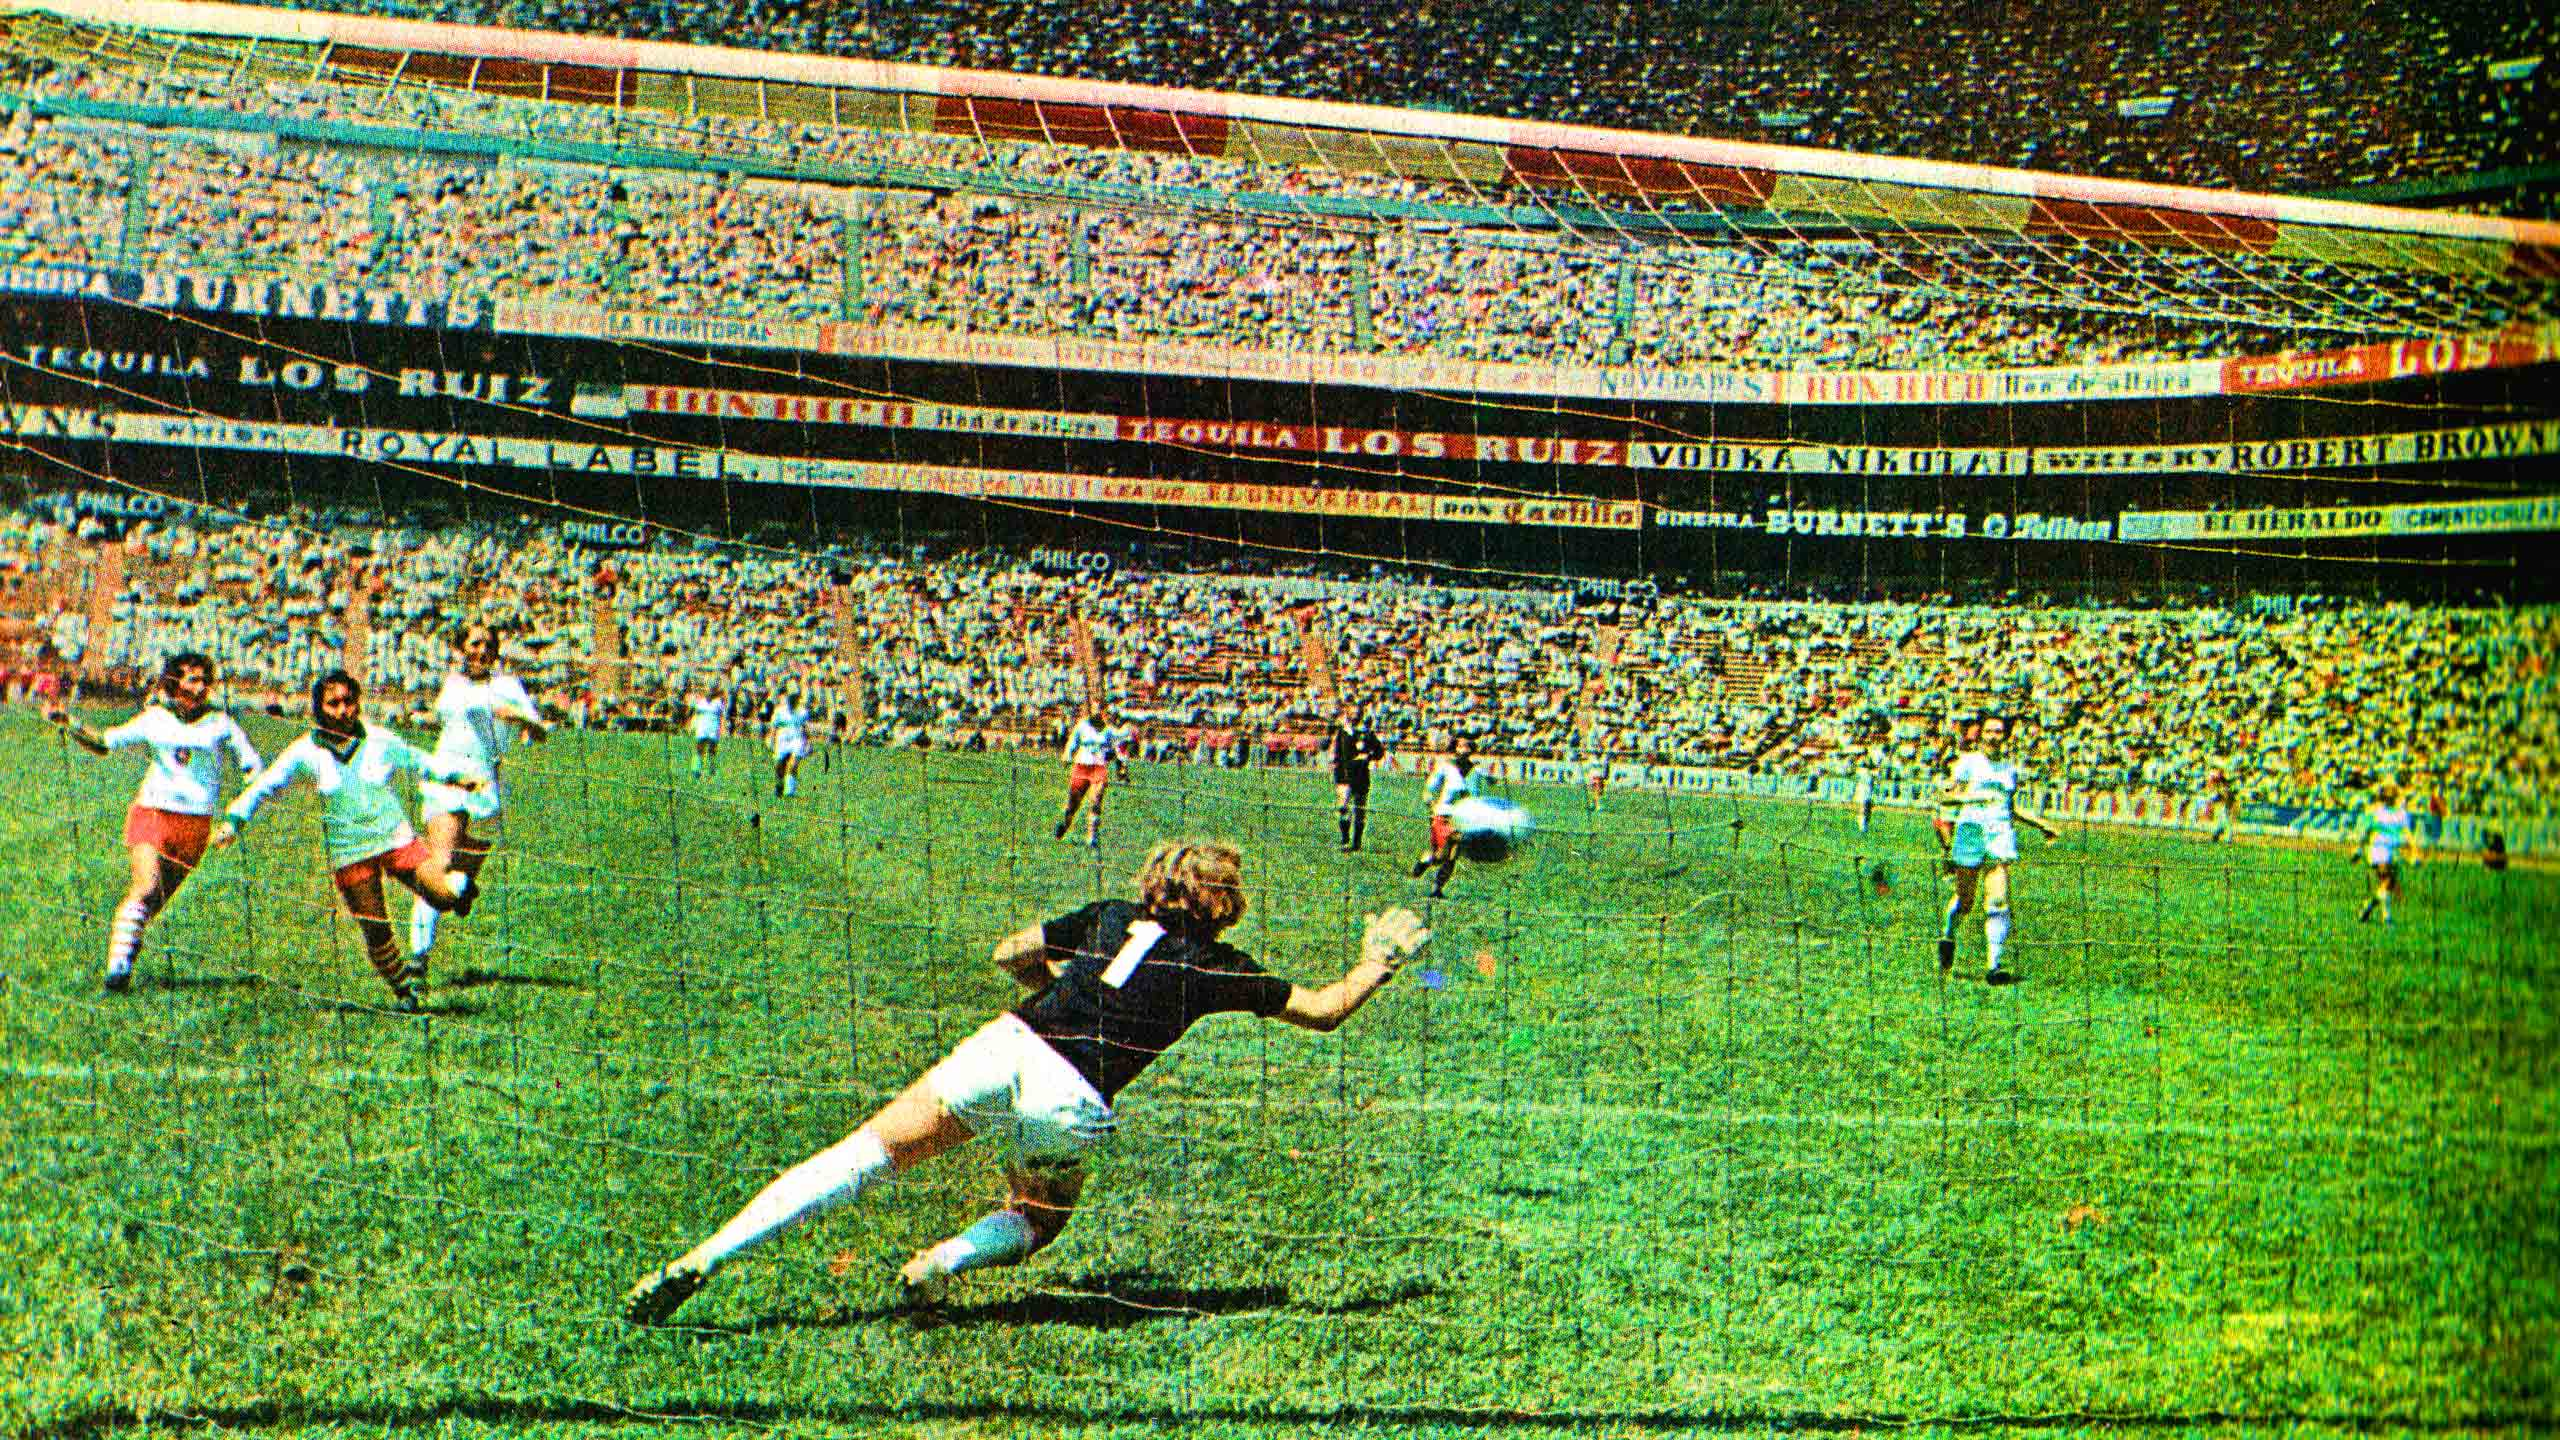 3f7b83ddc82 England vs Mexico in the 1971 Women's World Cup at the Azteca Stadium in  Mexico City